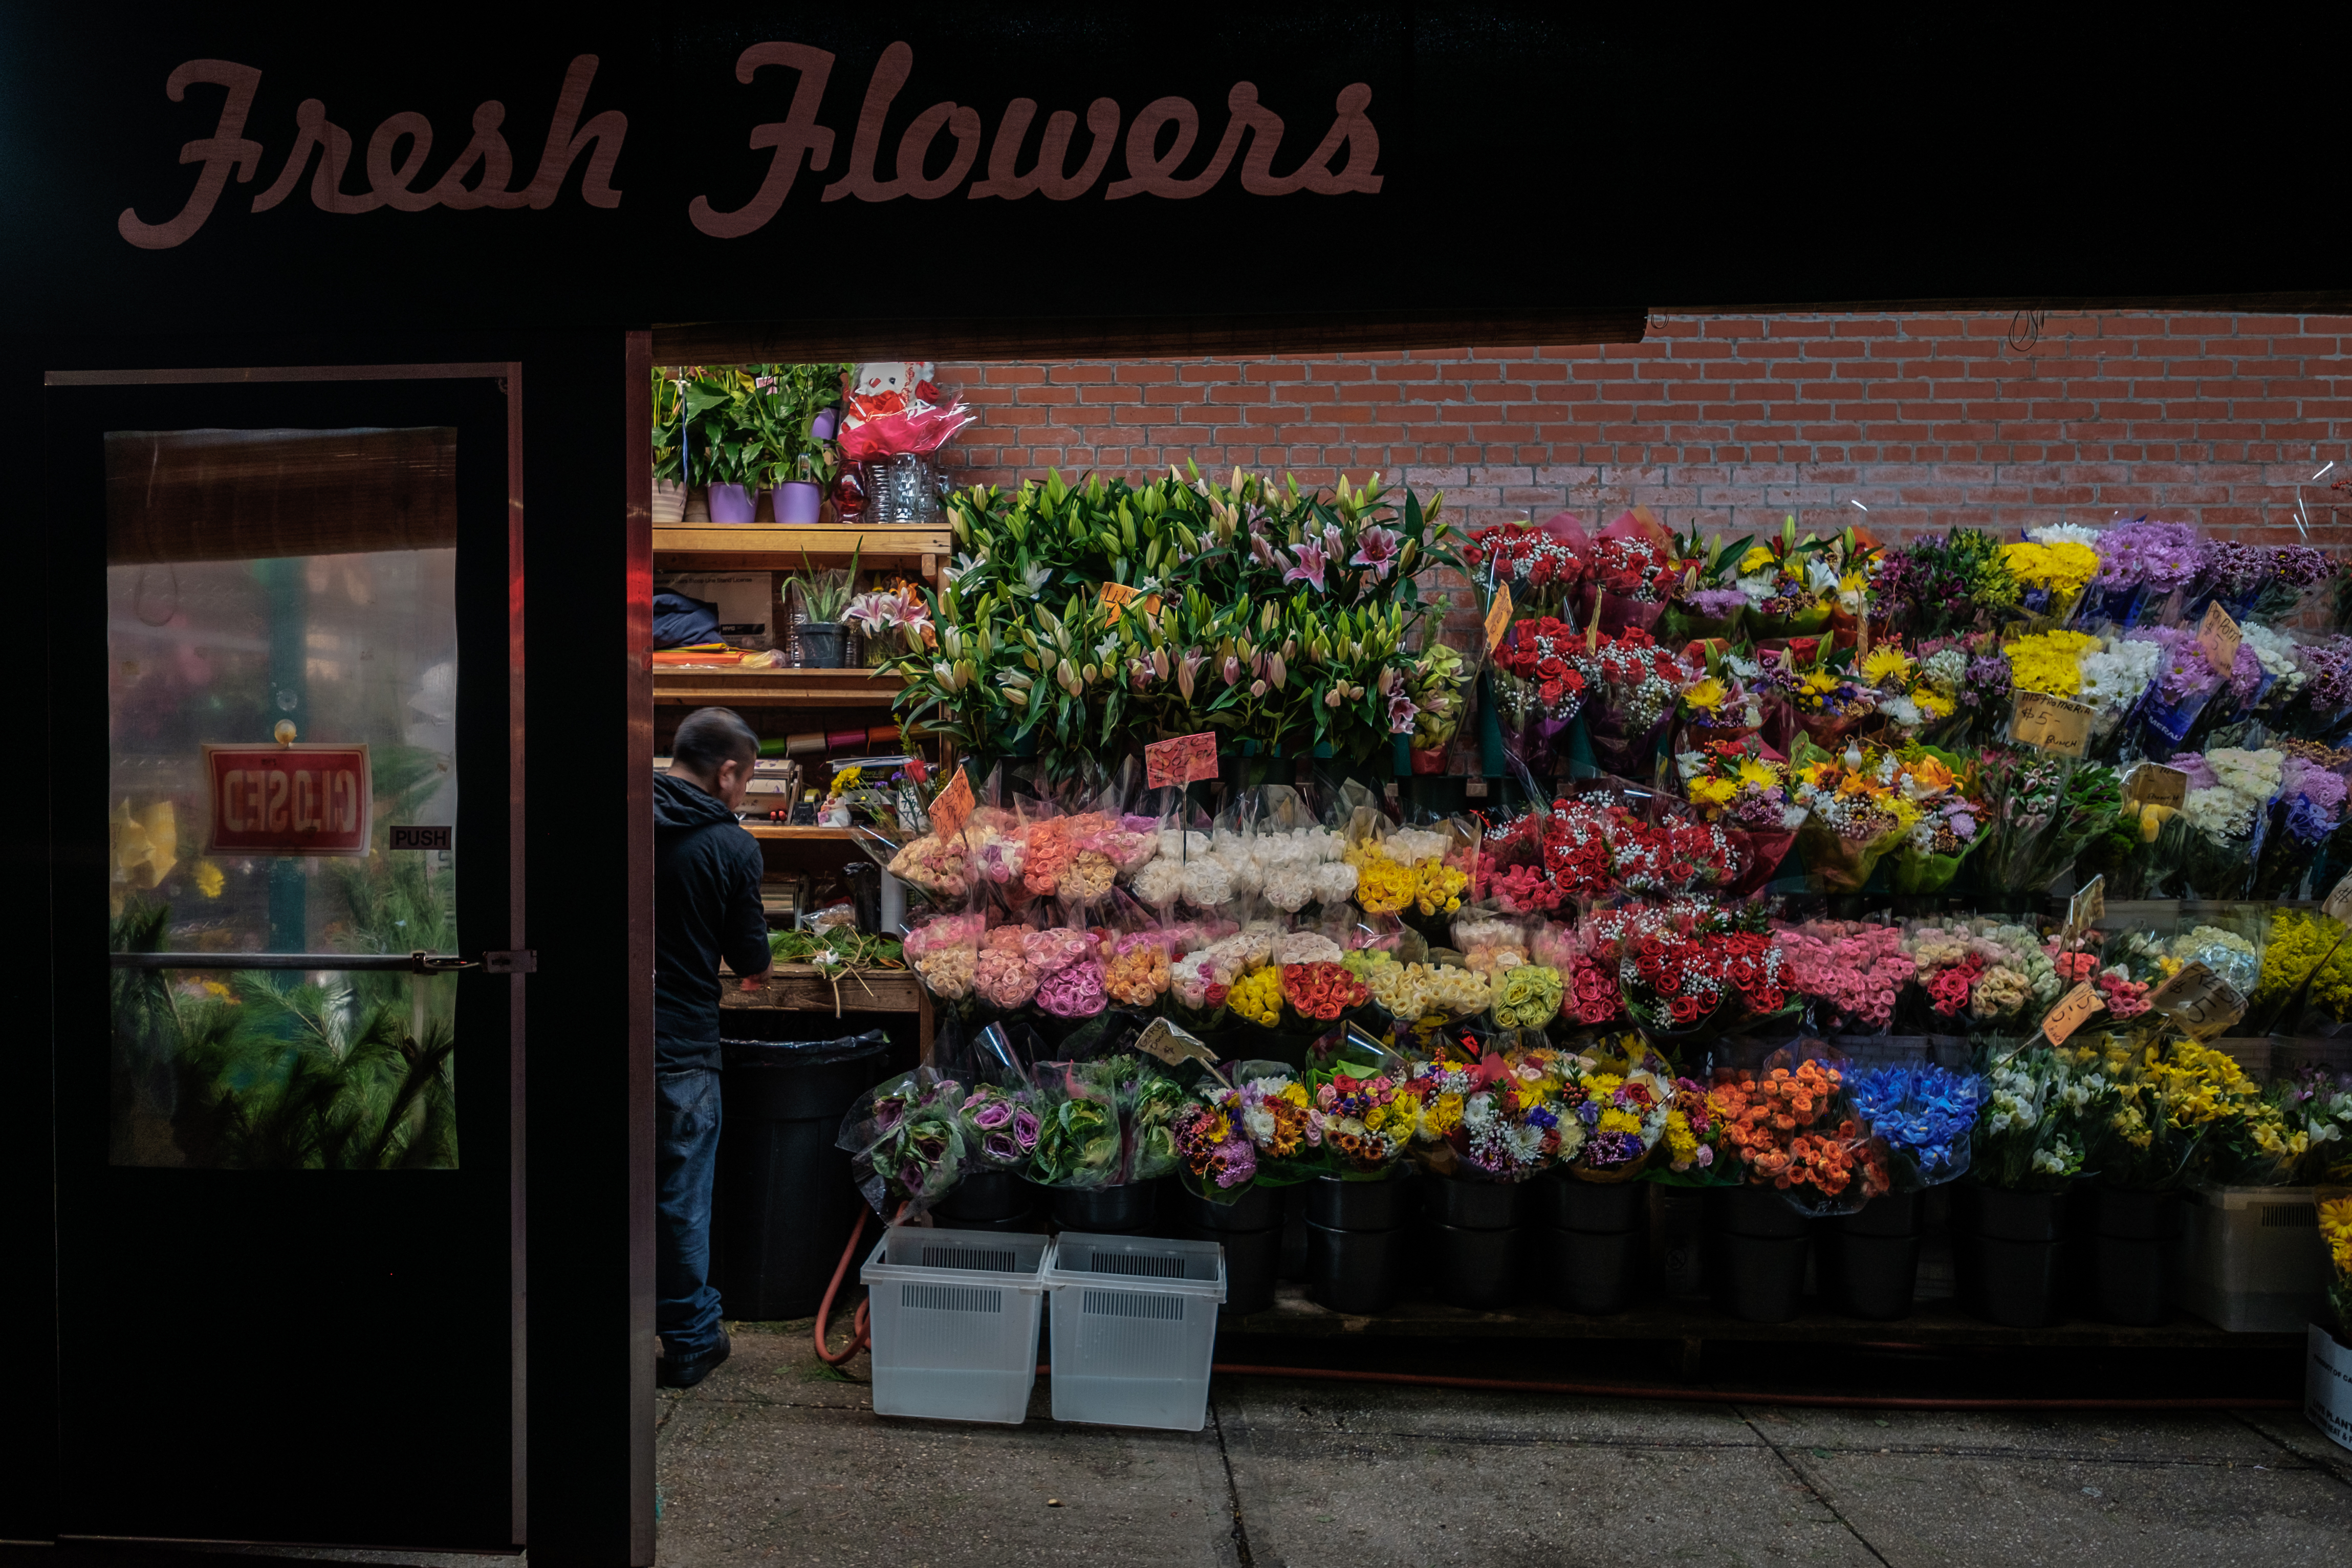 cobble-hill-flower-stand-night-color-photography